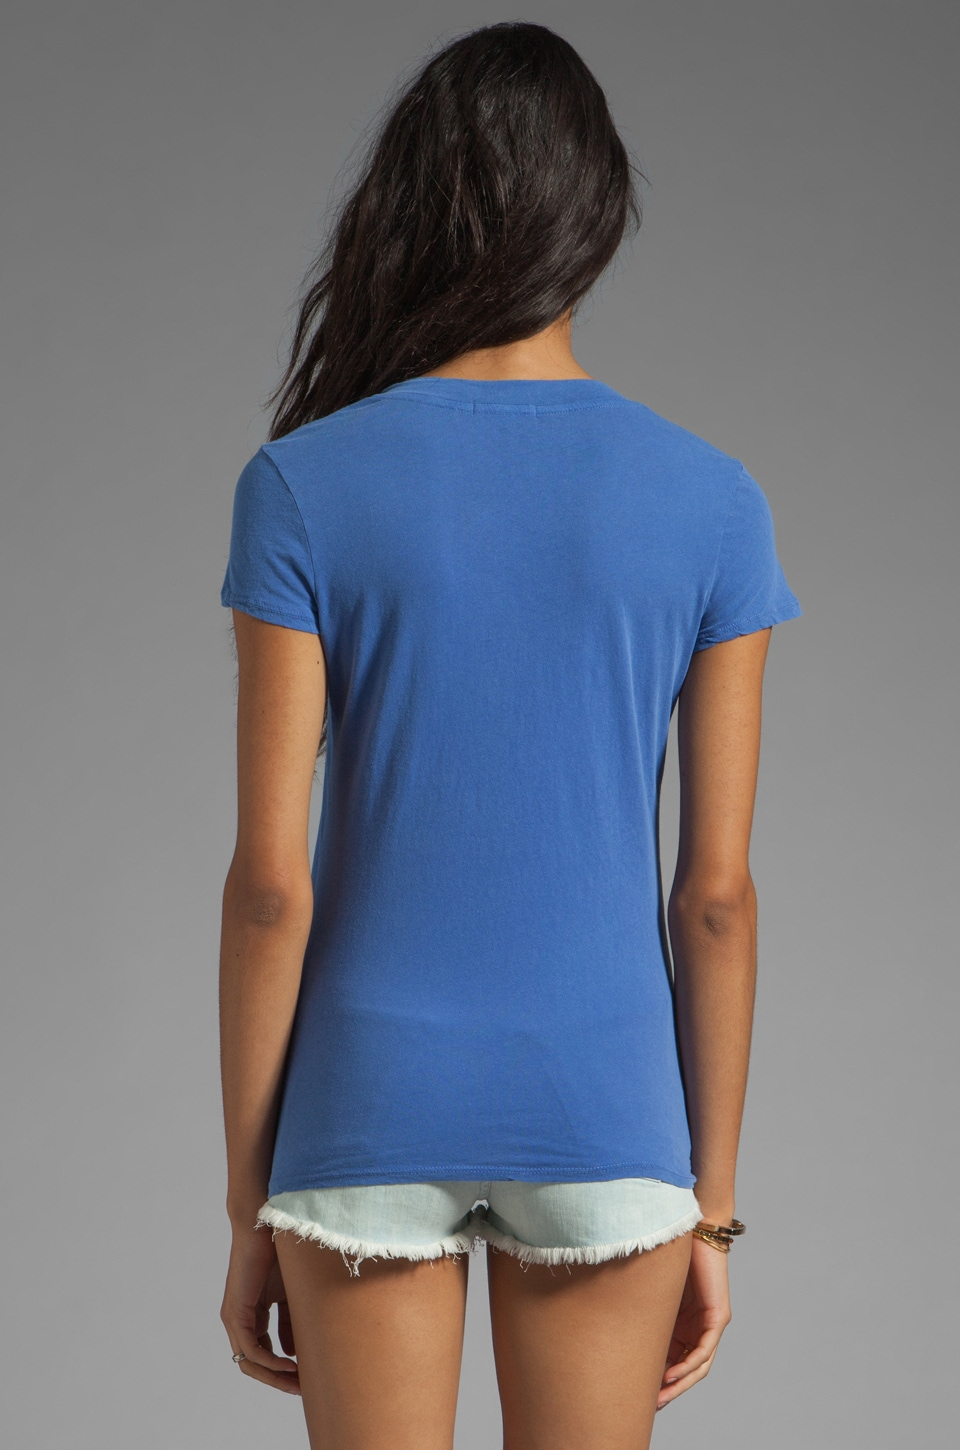 James Perse Short Sleeve Relaxed V-Neck Tee in Bluebell